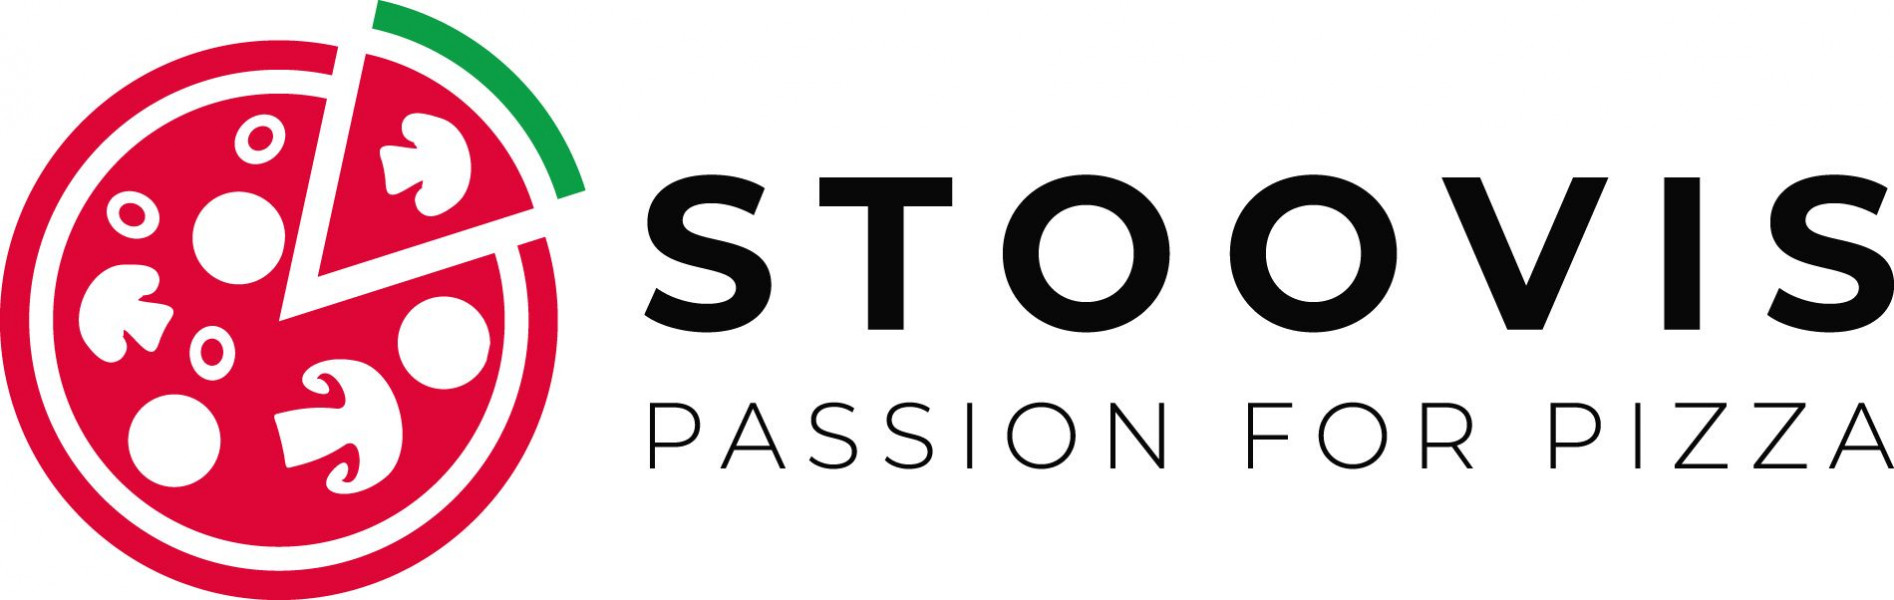 Stoovis - Passion for Pizza